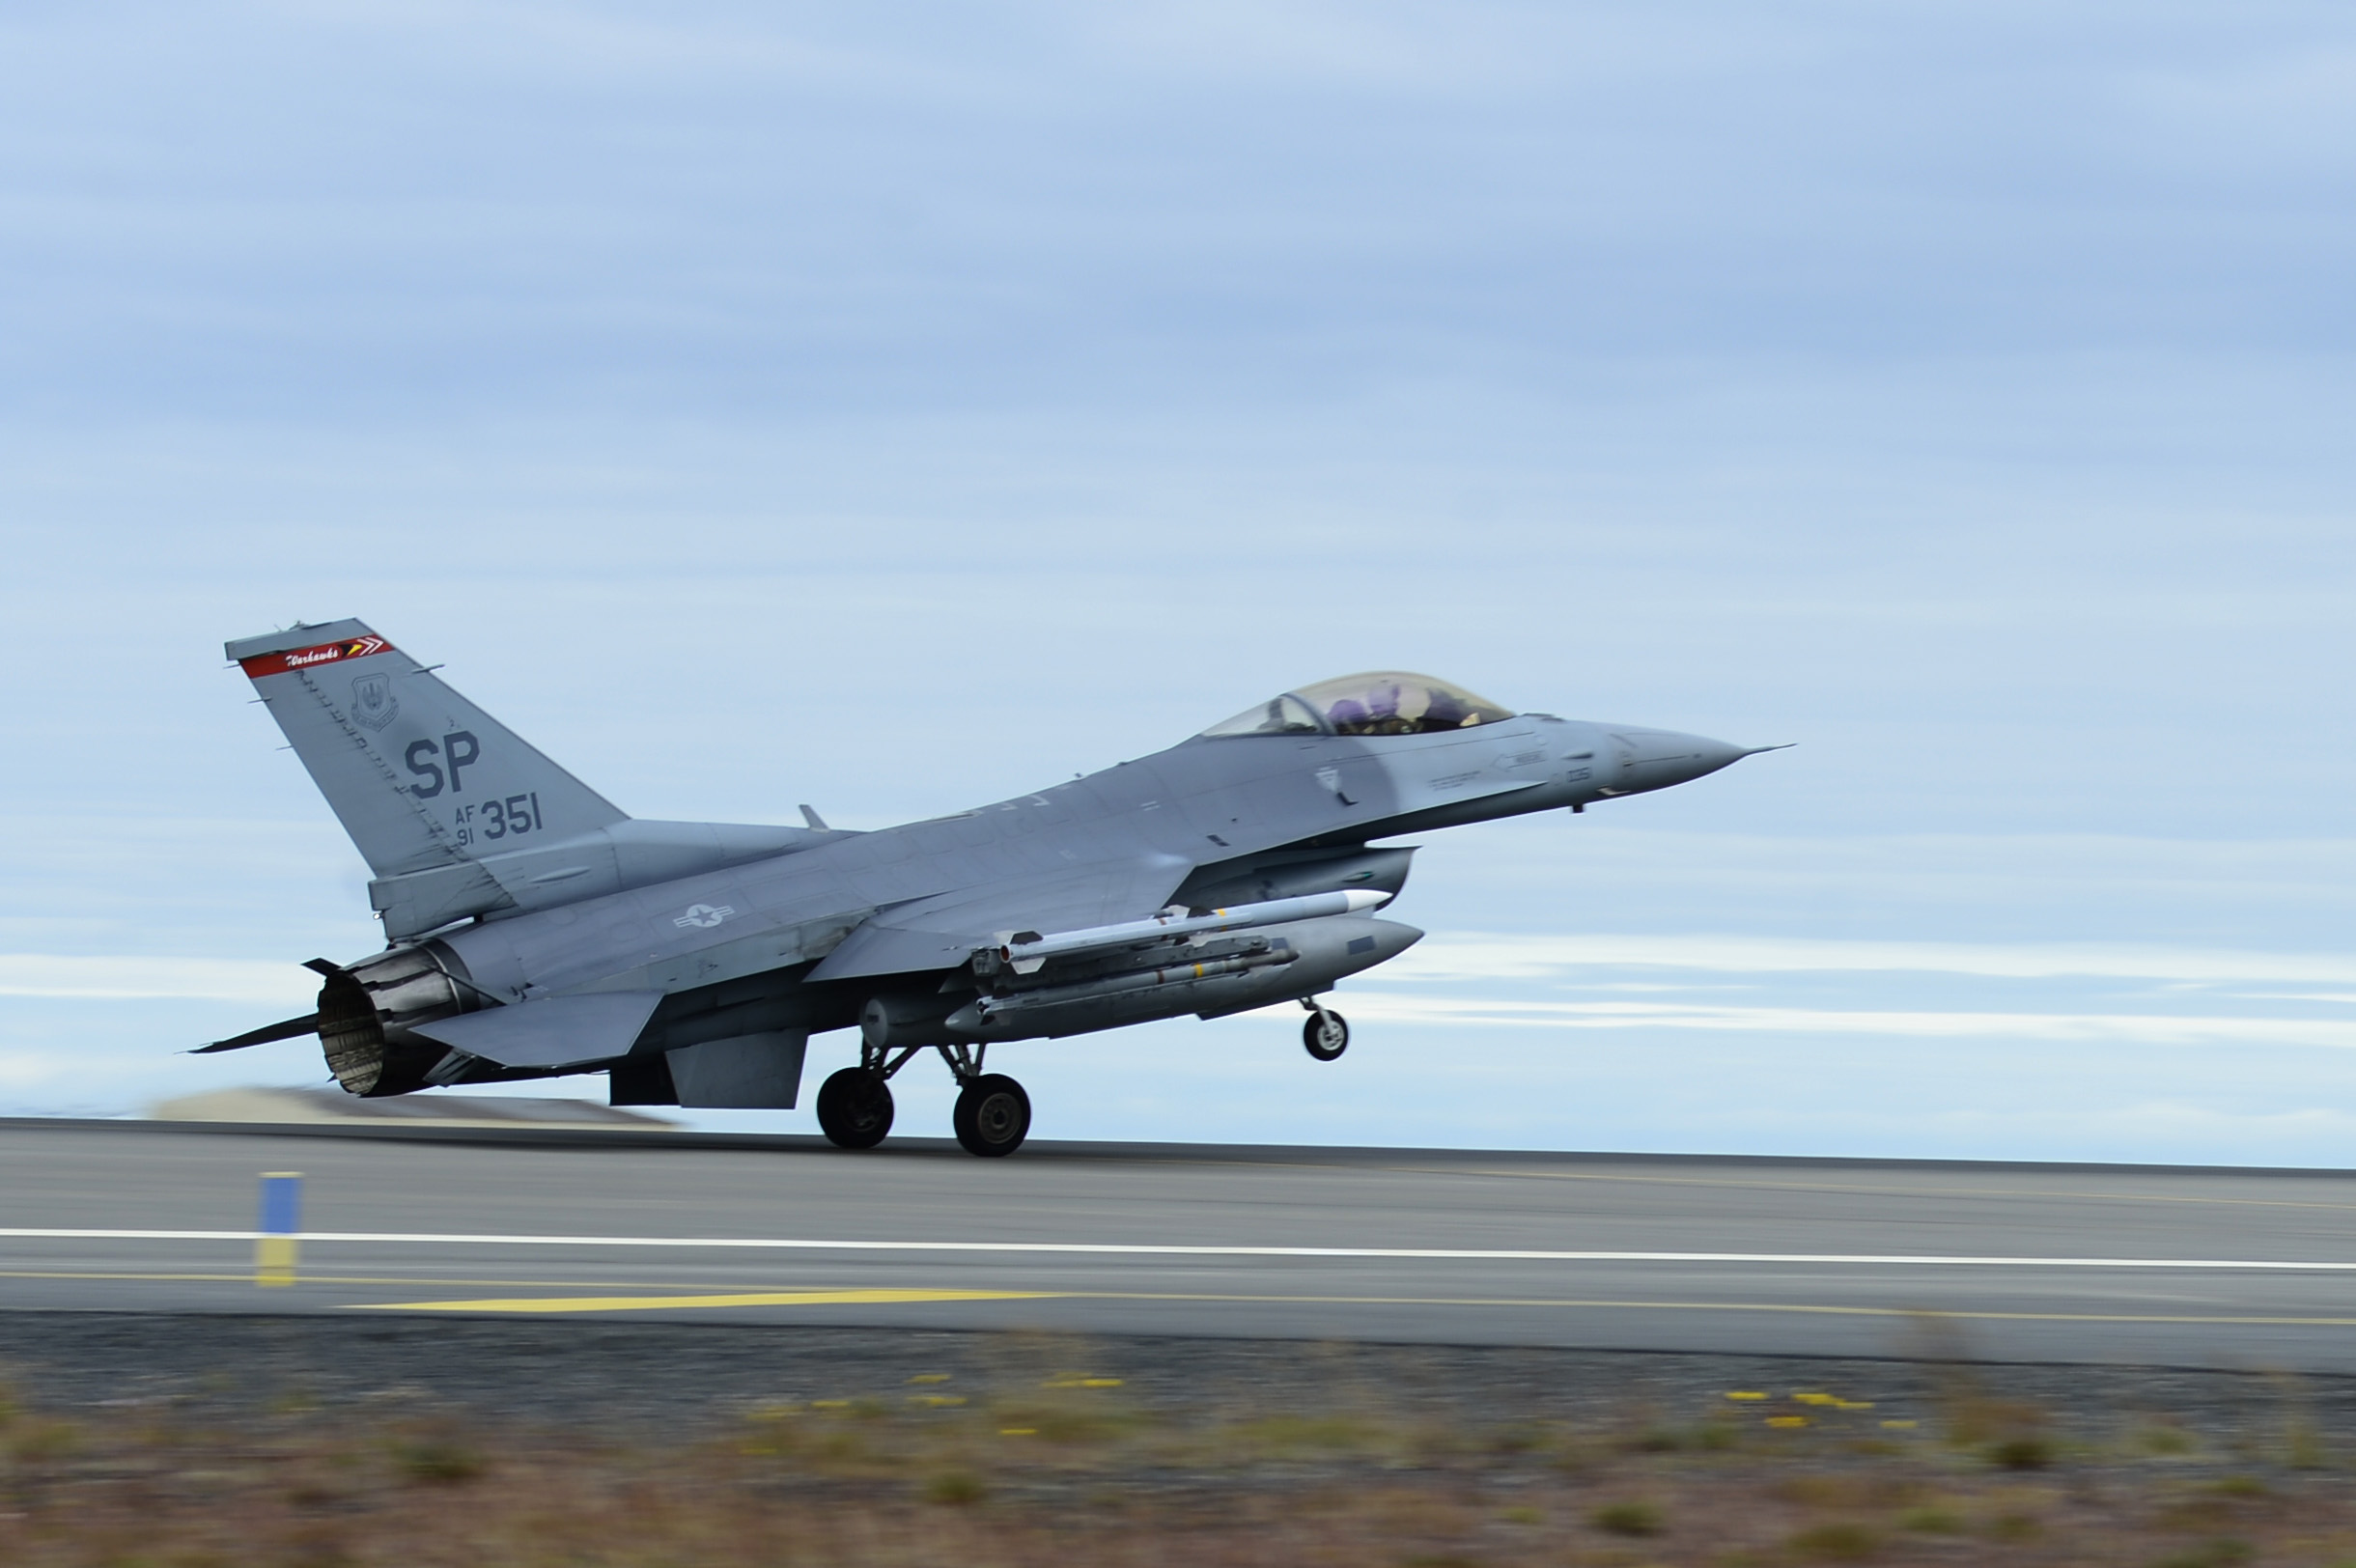 52nd Fighter Wing Conducts Scramble Training